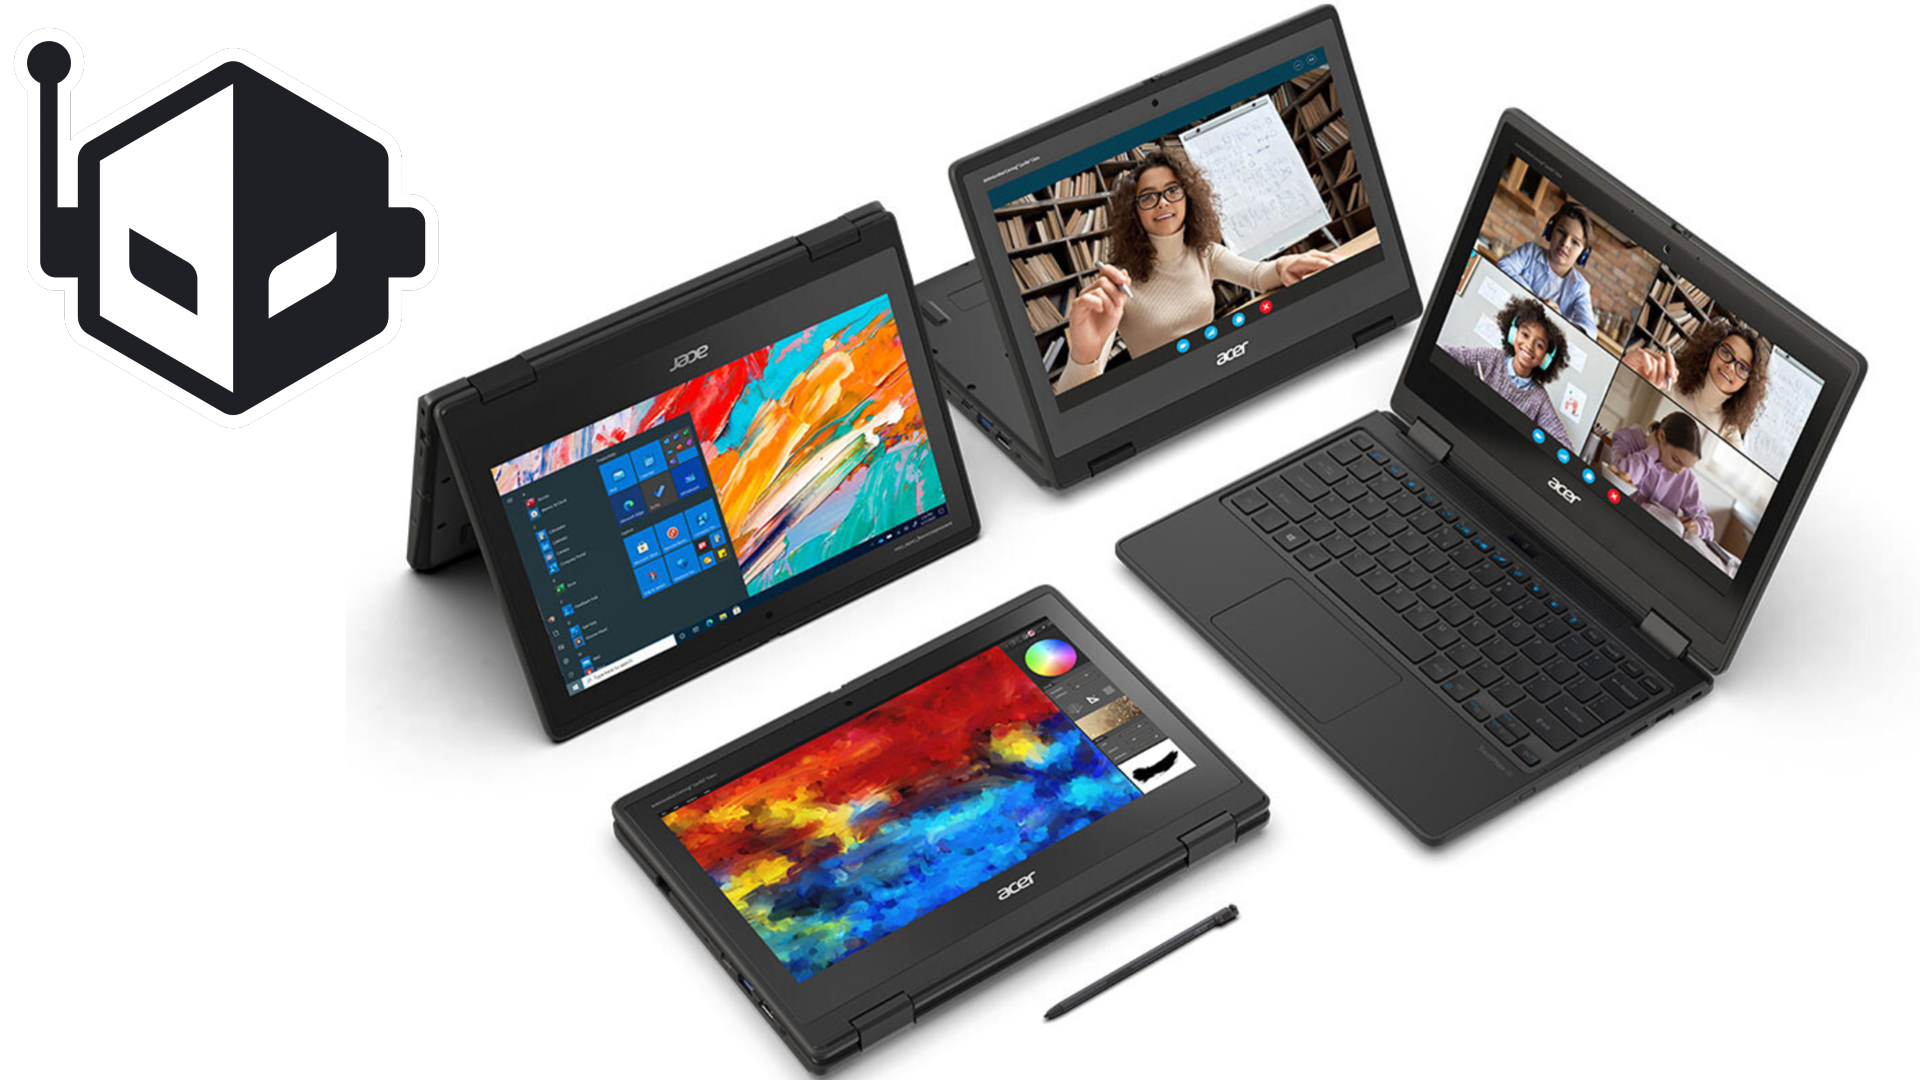 Acer Introduces The New TravelMate Spin B3 Laptop